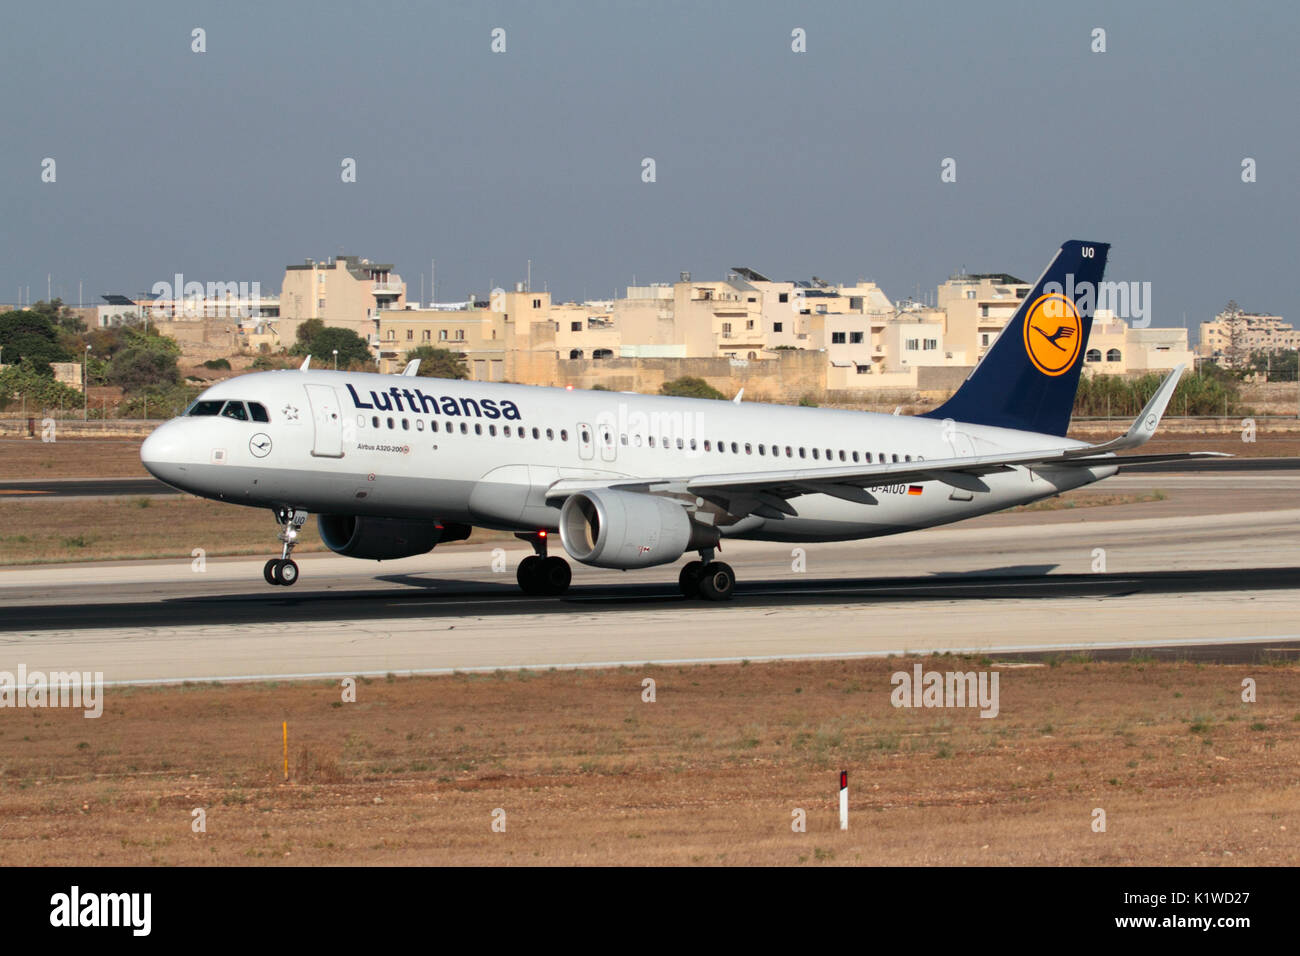 Lufthansa Airbus A320 passenger jet plane rotating nose up on the runway during takeoff. Modern civil aviation and Stock Photo